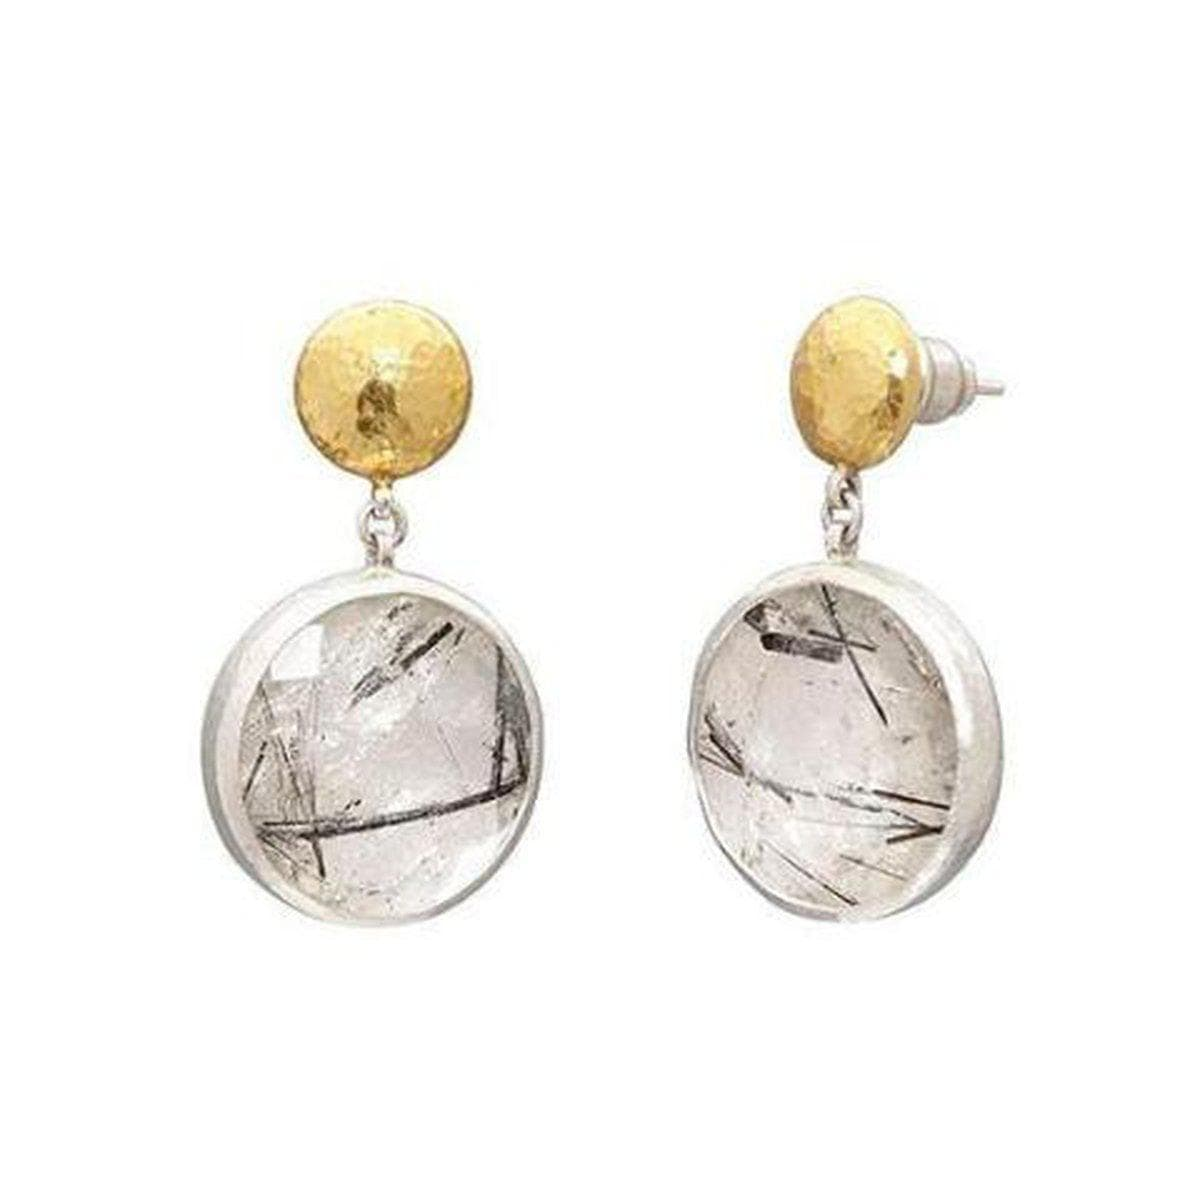 Galapagos Sterling Silver Rutilated Quartz Earrings - SE-U25728-BRQ-GURHAN-Renee Taylor Gallery